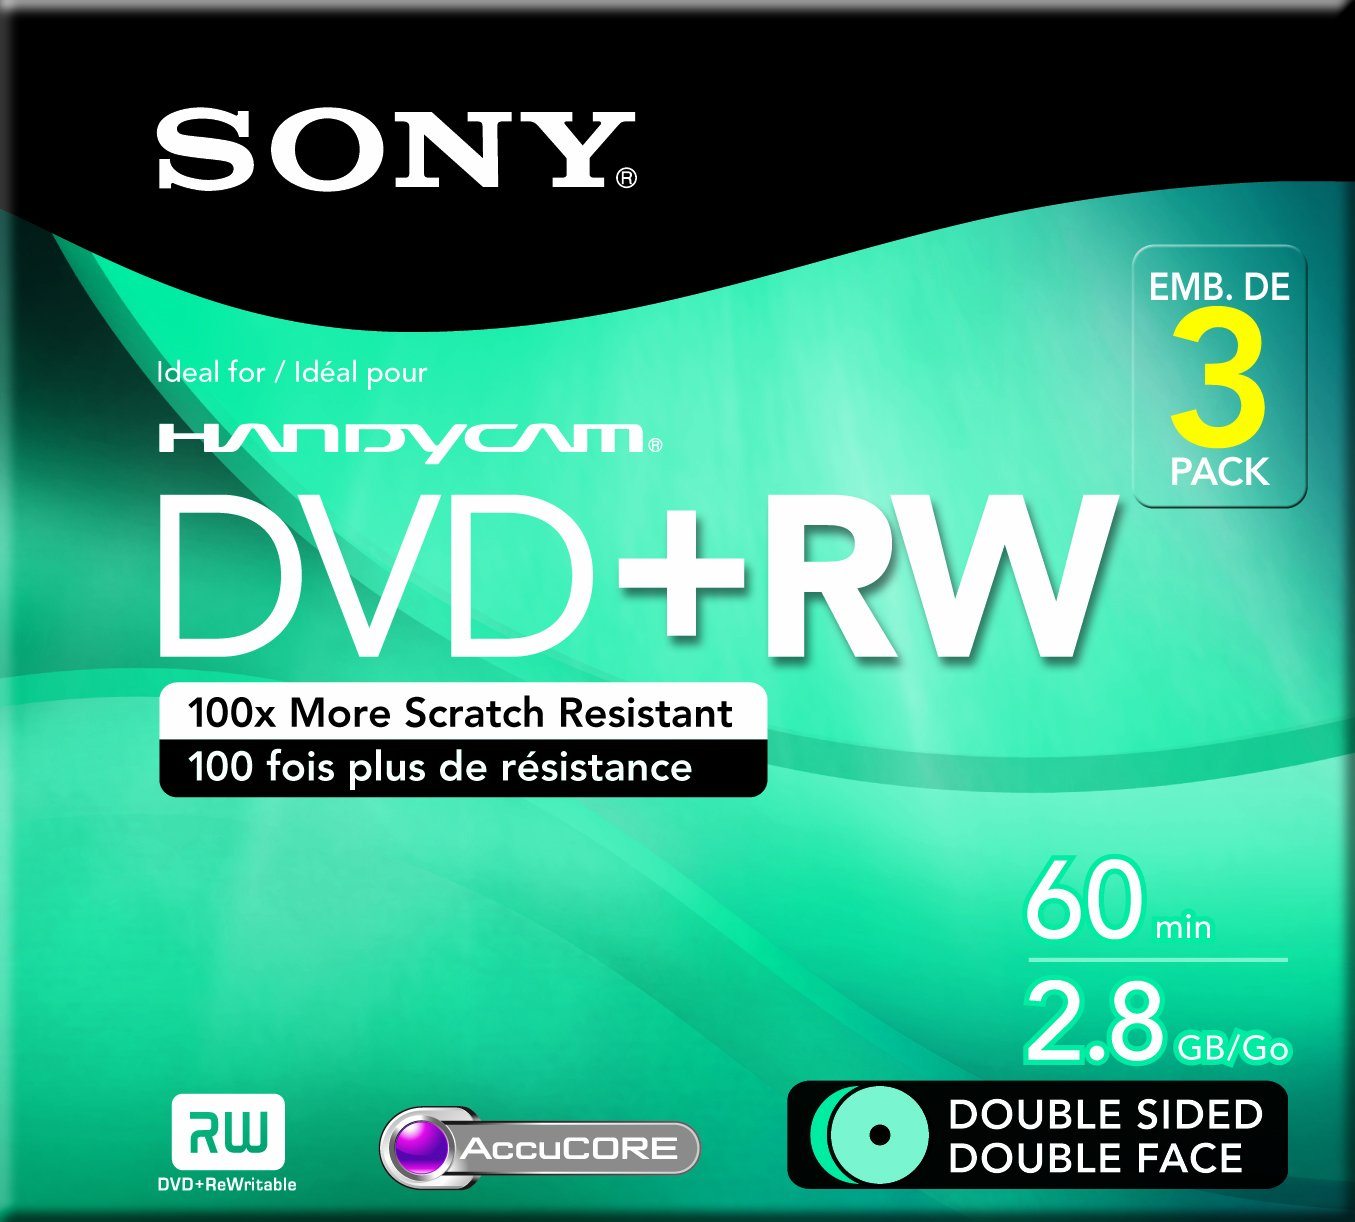 Sony 3DPW60DSR2H 8cm Double-Sided DVD plus RW 3-Pack with Hang Tab (Discontinued by Manufacturer)